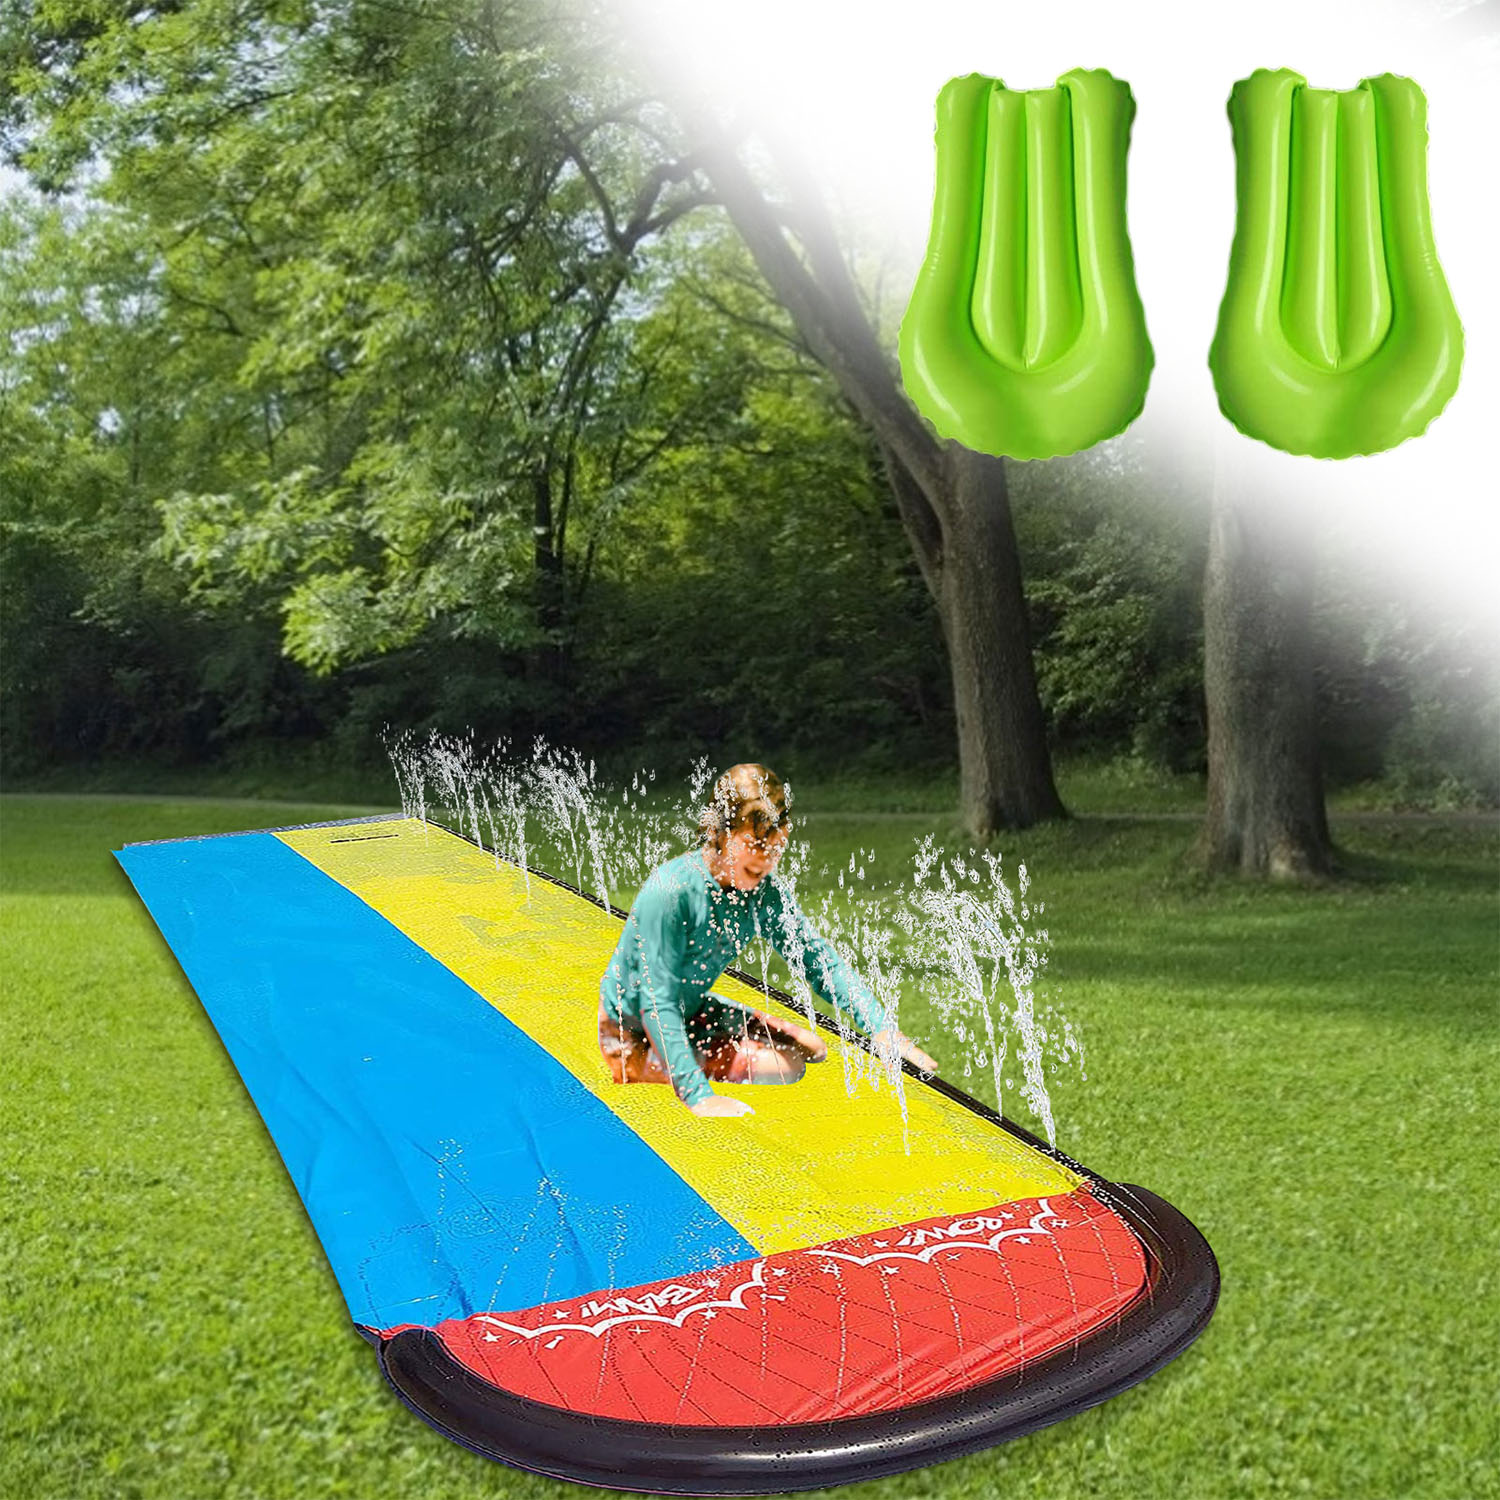 480x140cm Double Lawn Water Slide Fun Giant Surf Water Slide Pools Spray With 2pcs Mat For Kids Outdoor Summer Water Games Toy